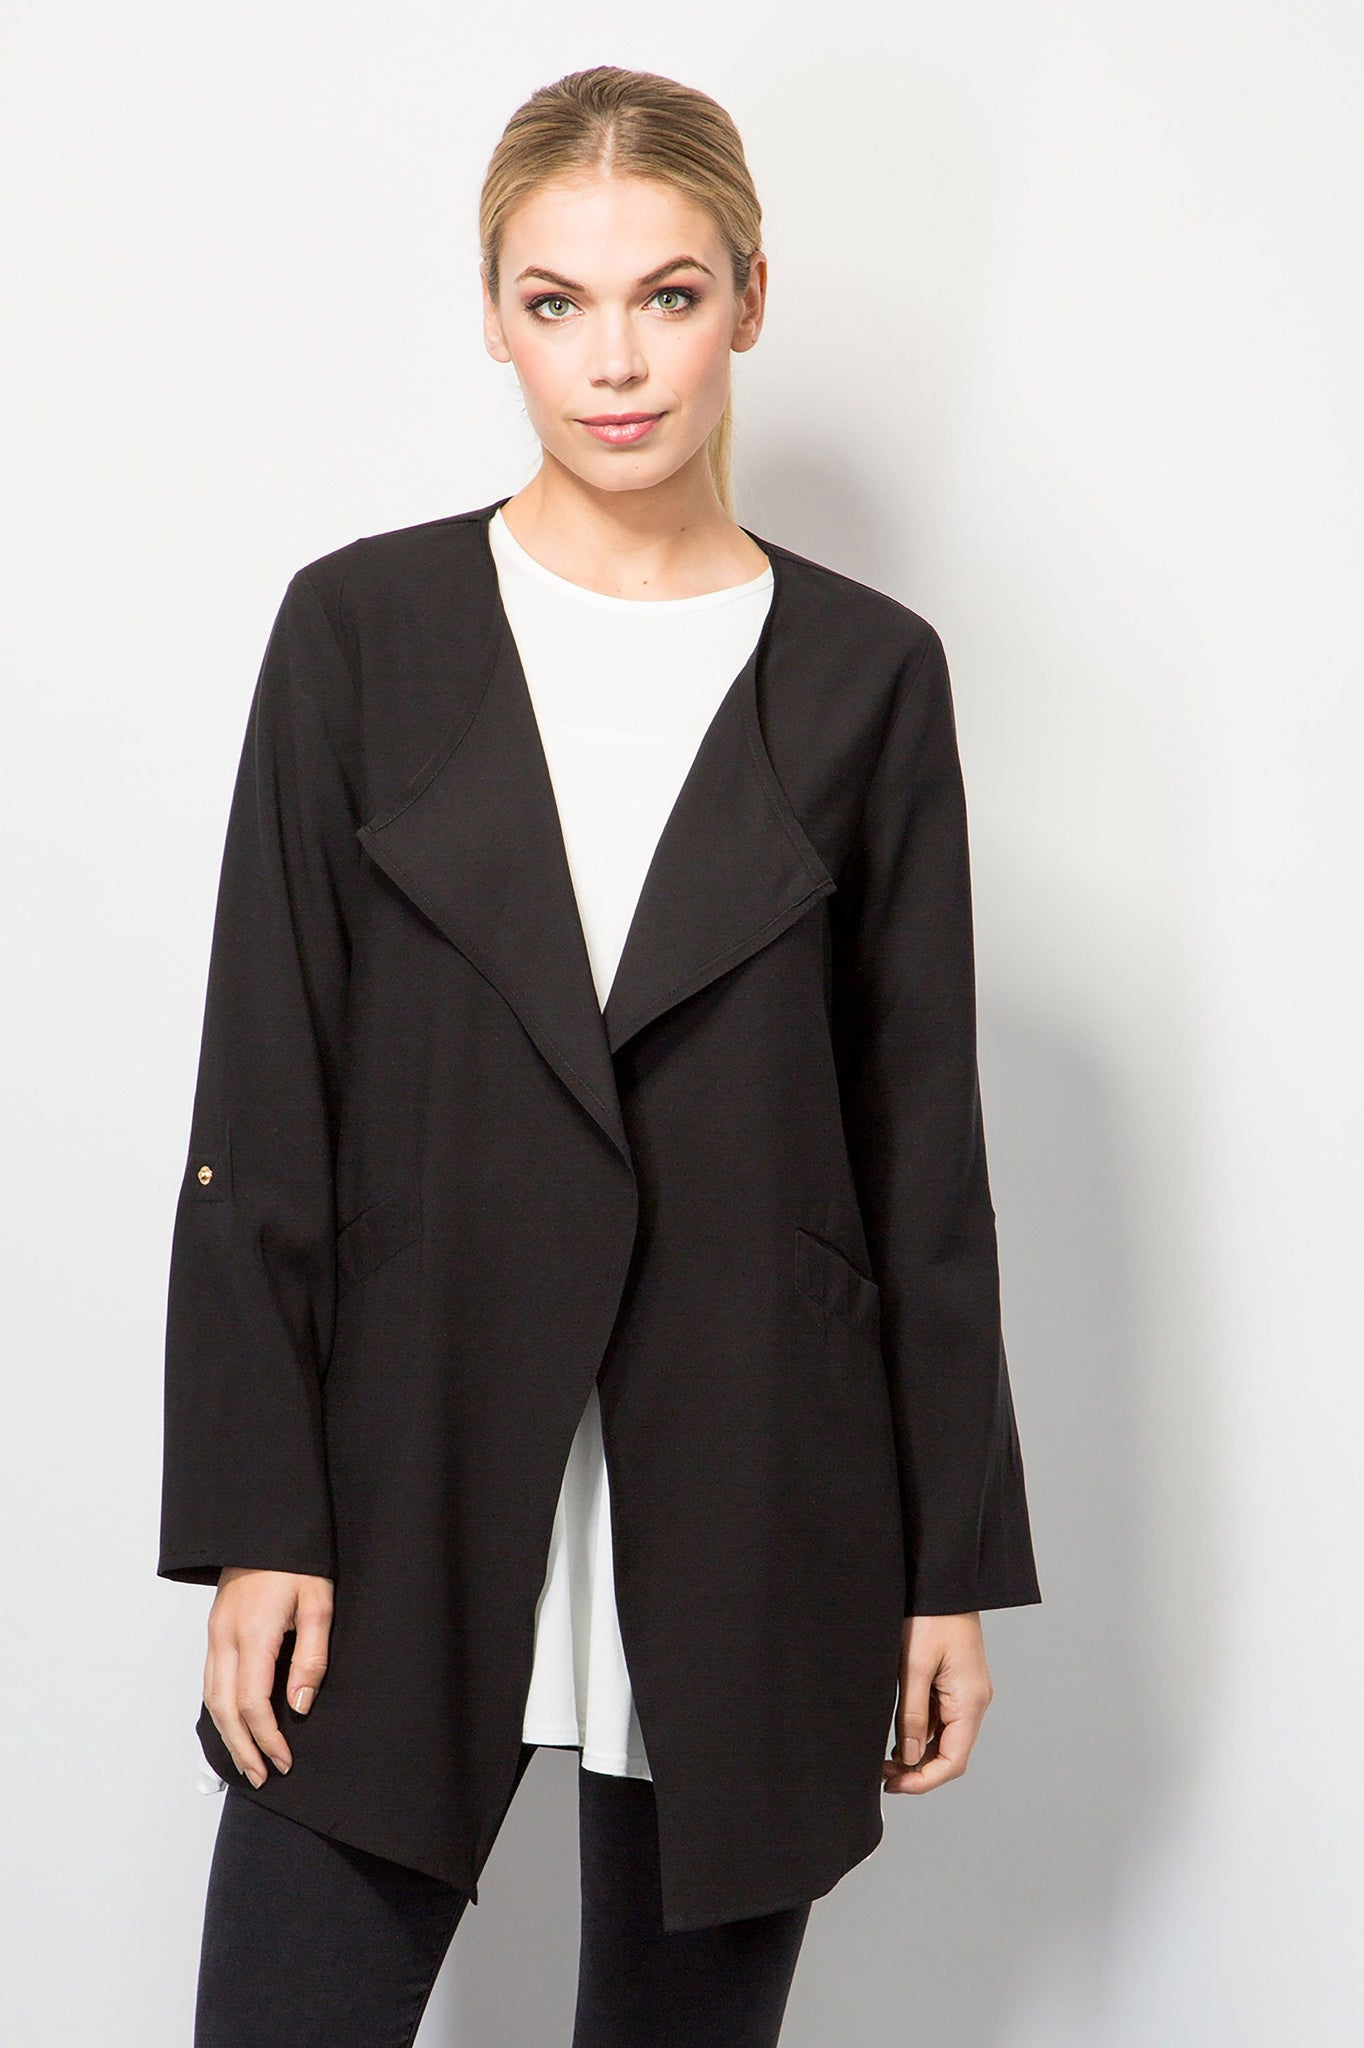 zara nz draped with en drapes of collar from zealand image woman coat coats outerwear new